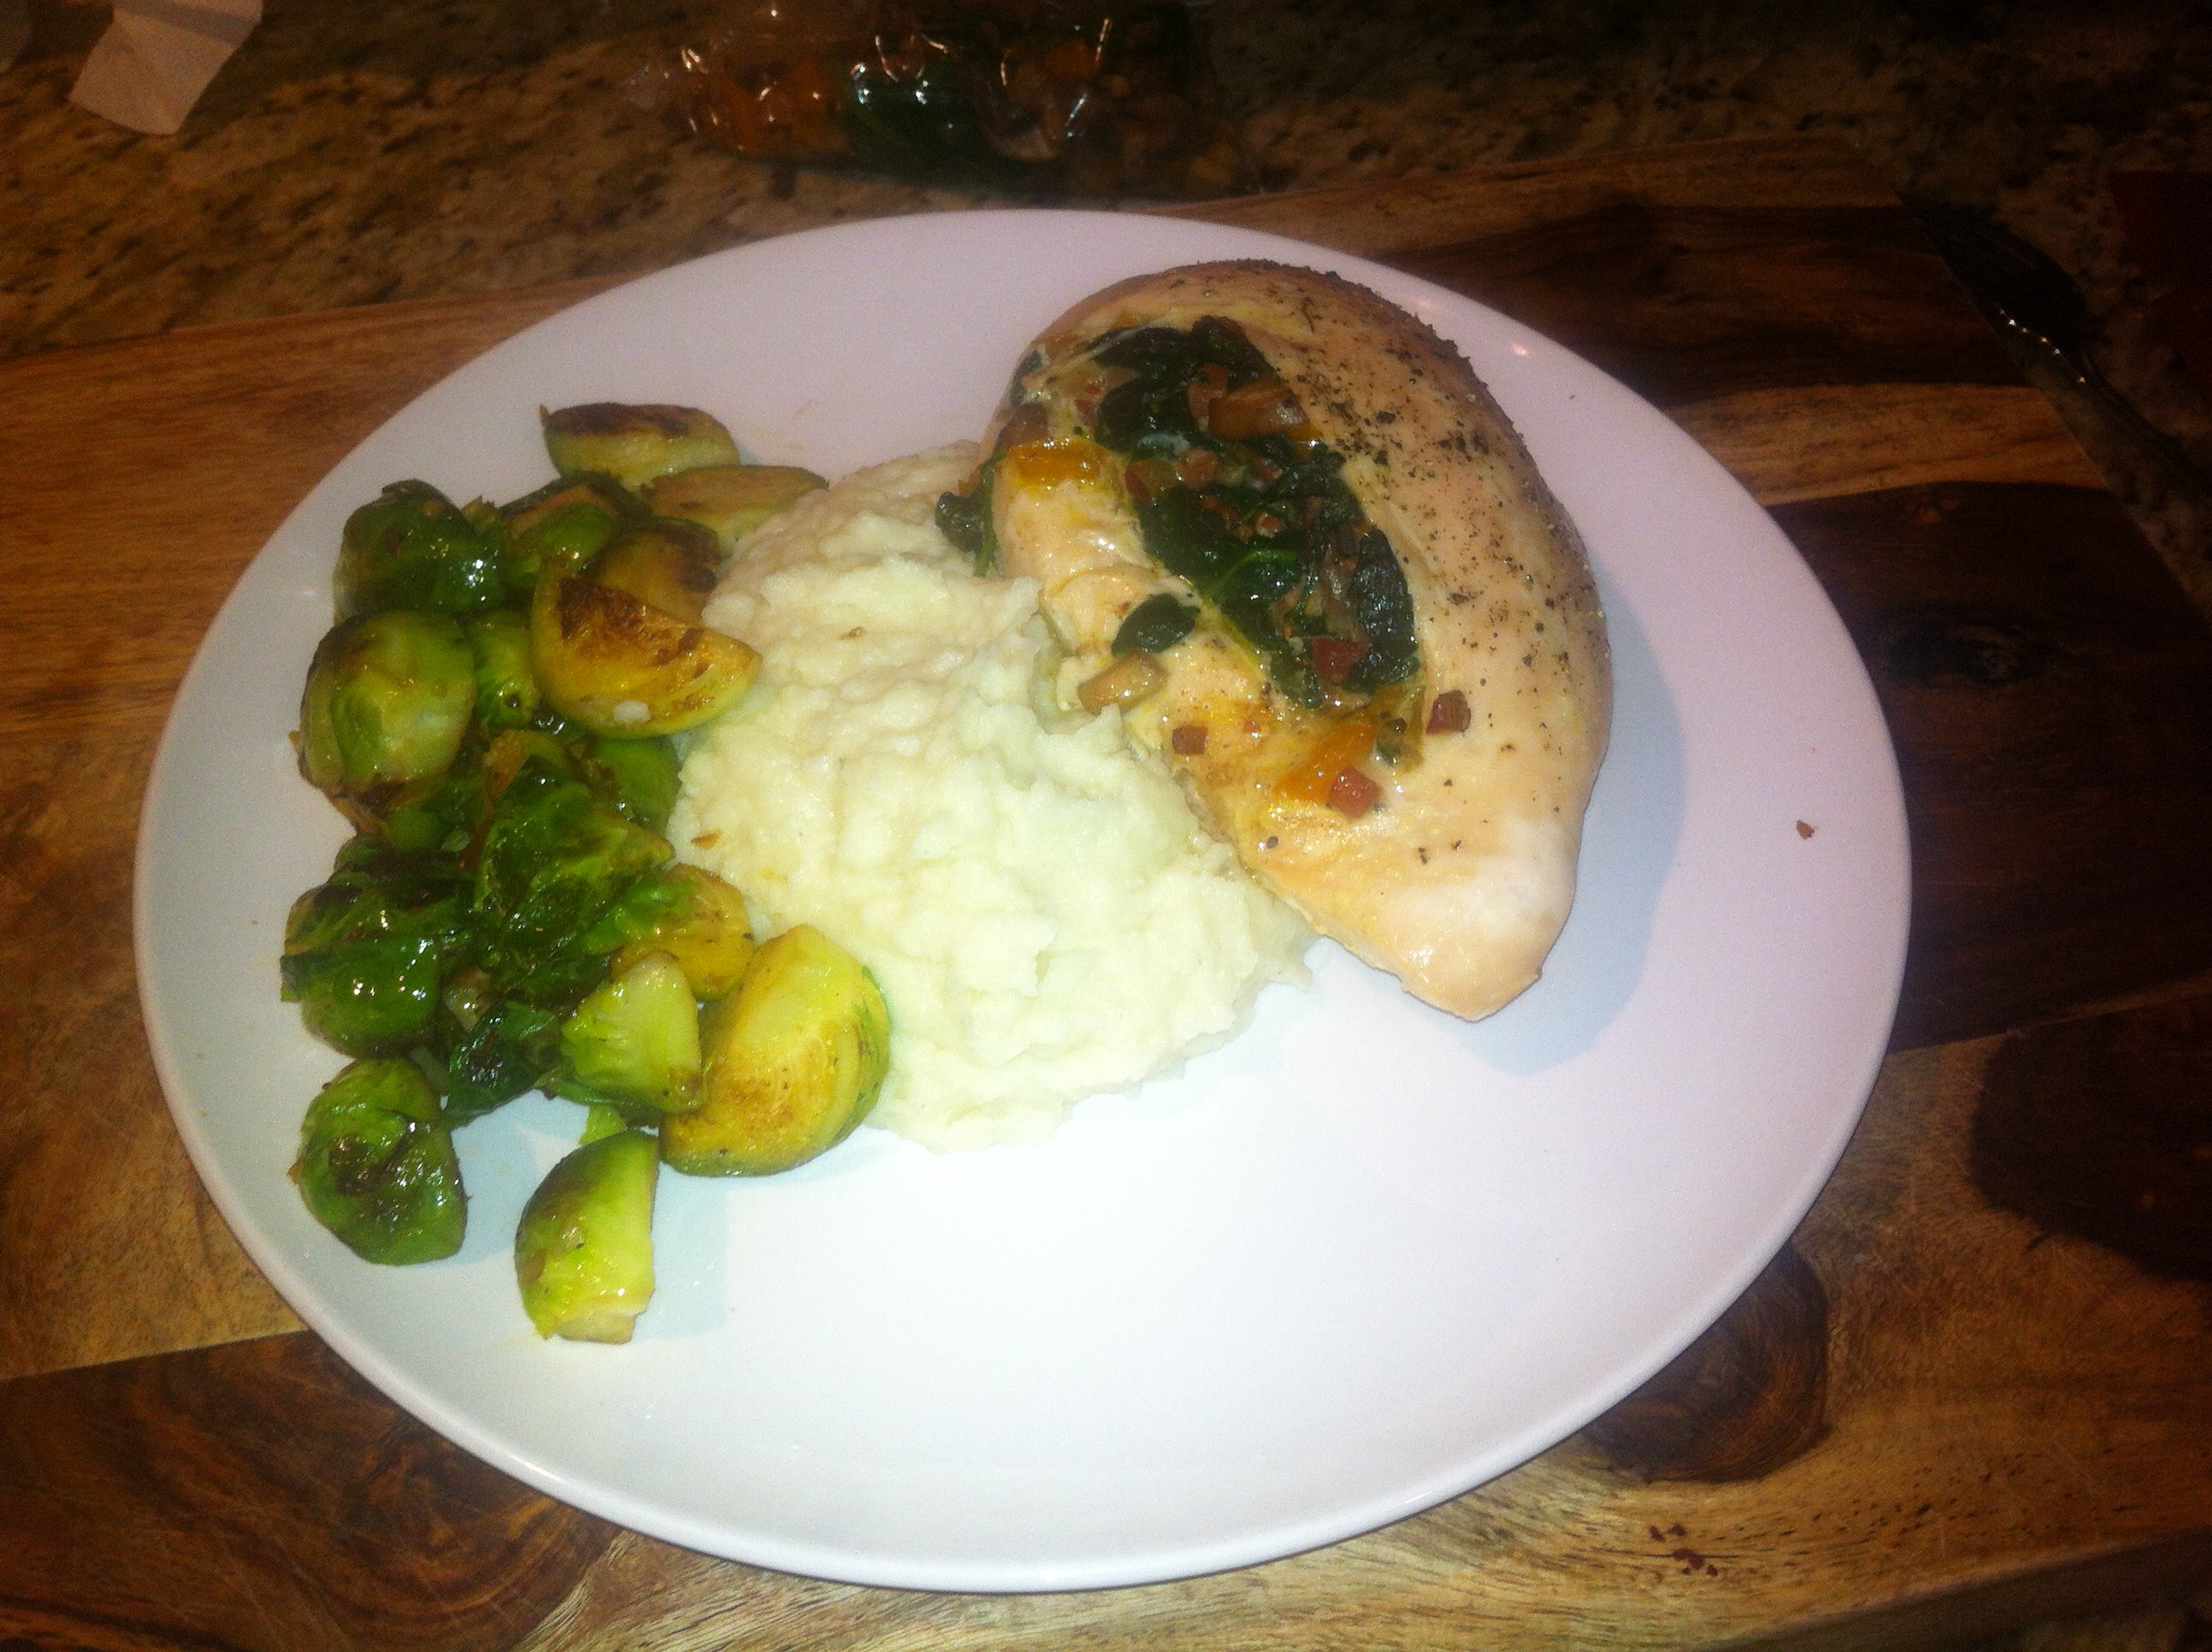 pancetta-stuffed-chicken-breast, paleo recipe, paleo food